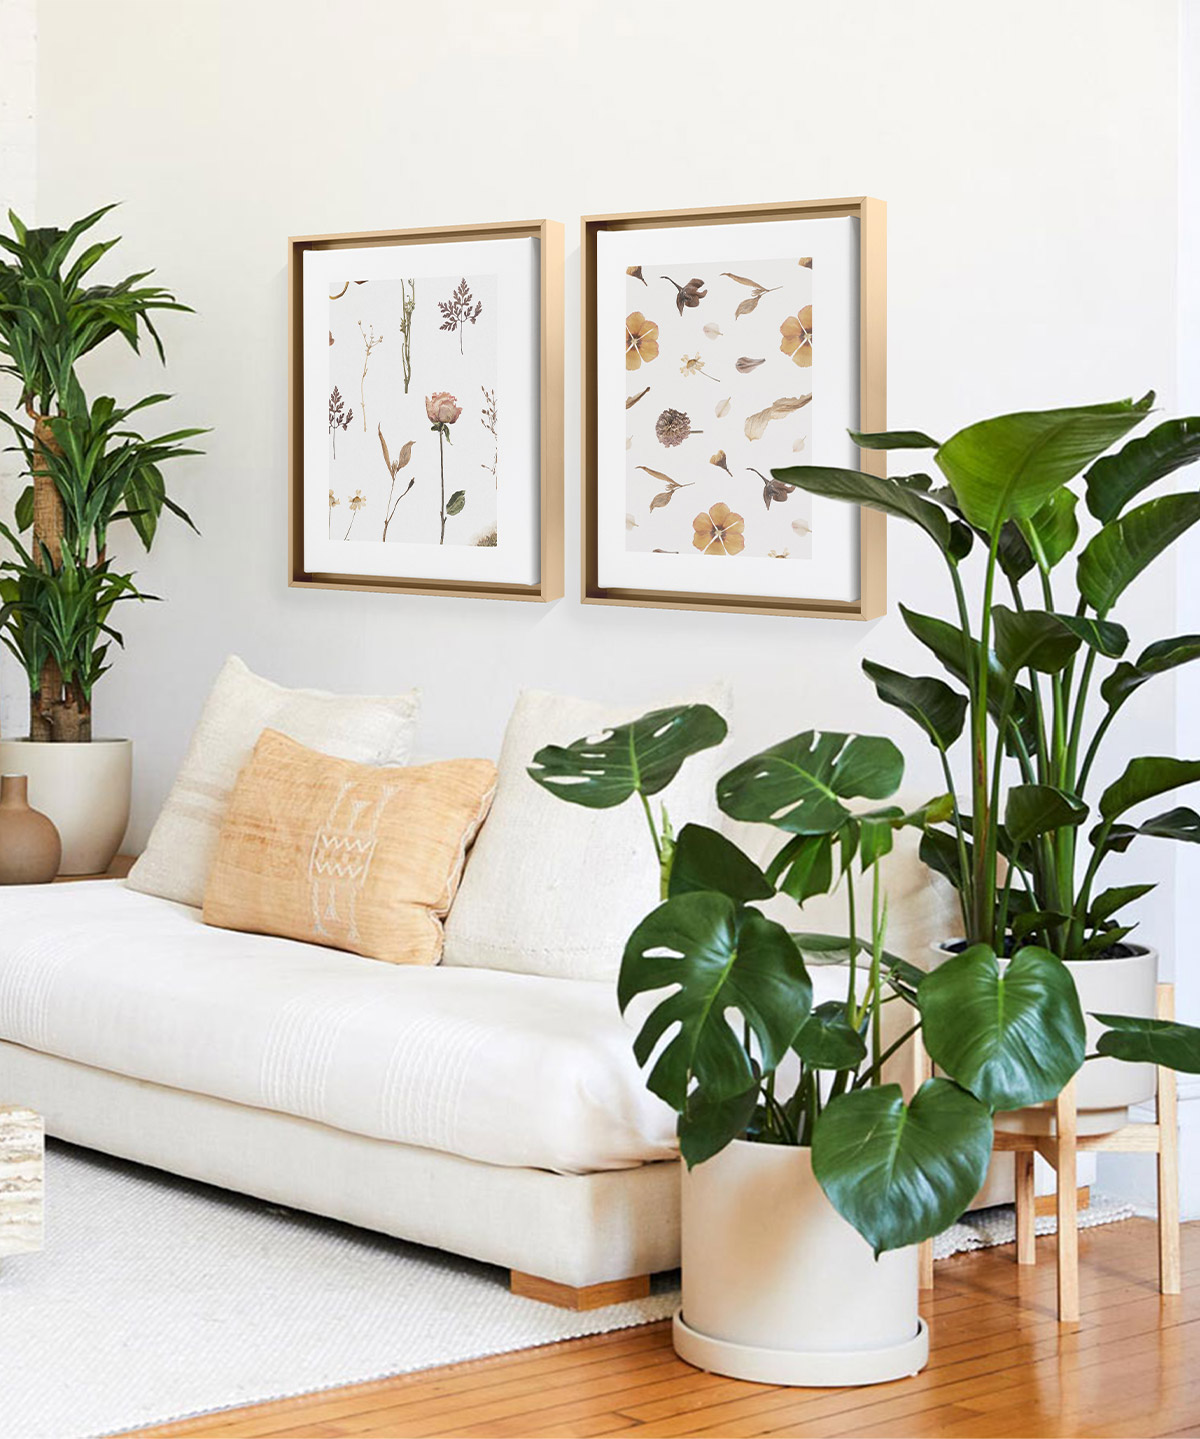 Artifact Uprising Framed Canvas Prints of dried botanicals hanging above white couch surrounded by plants